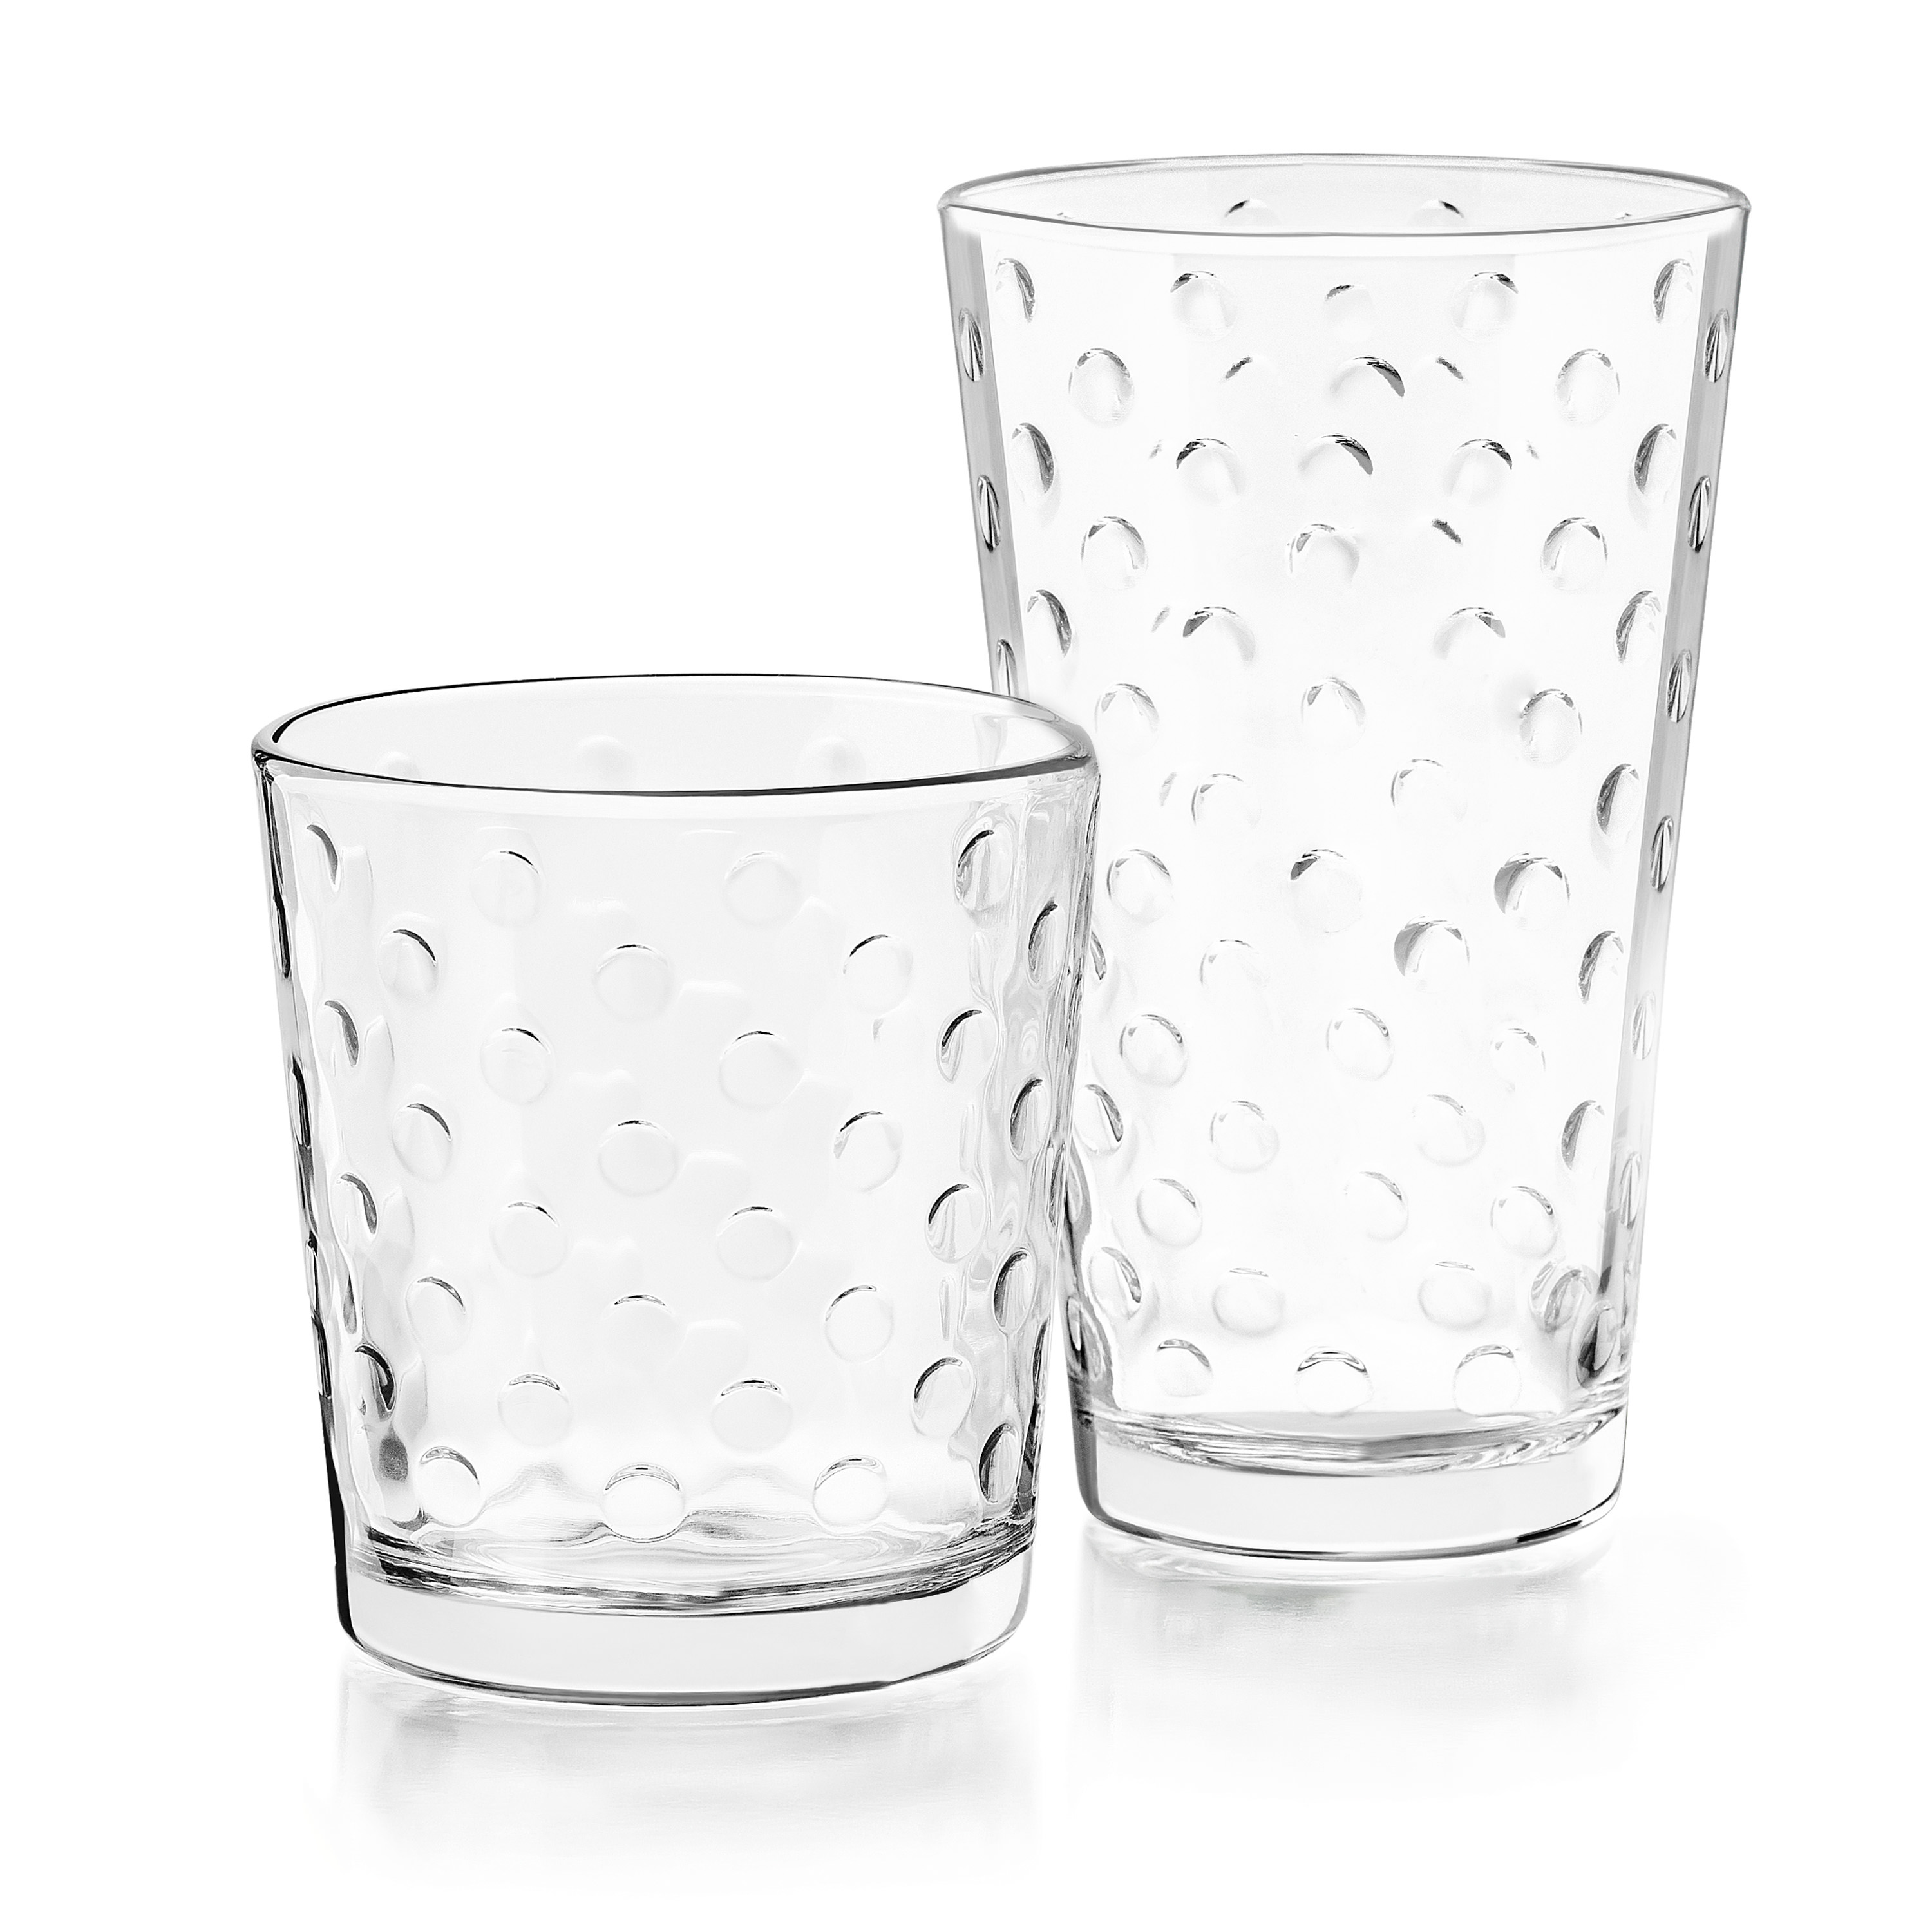 Libbey Awa 16-piece Glass Set by Libbey